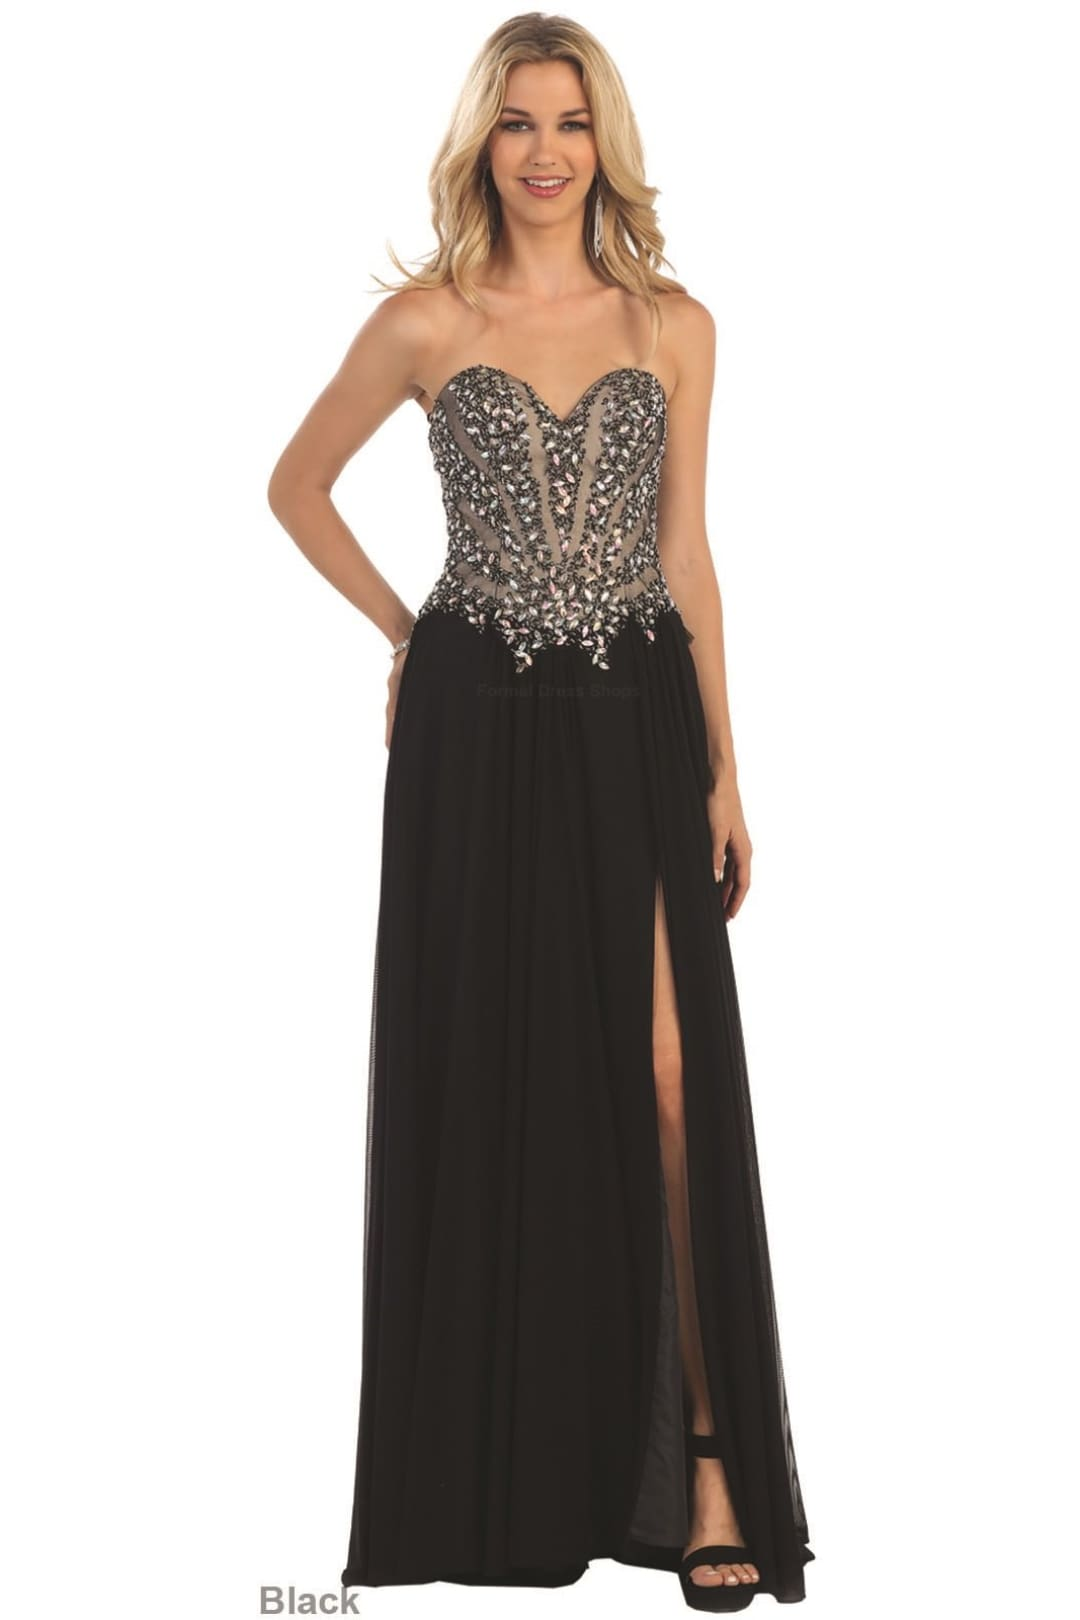 Glamorous Pageant Dress - Black / 4